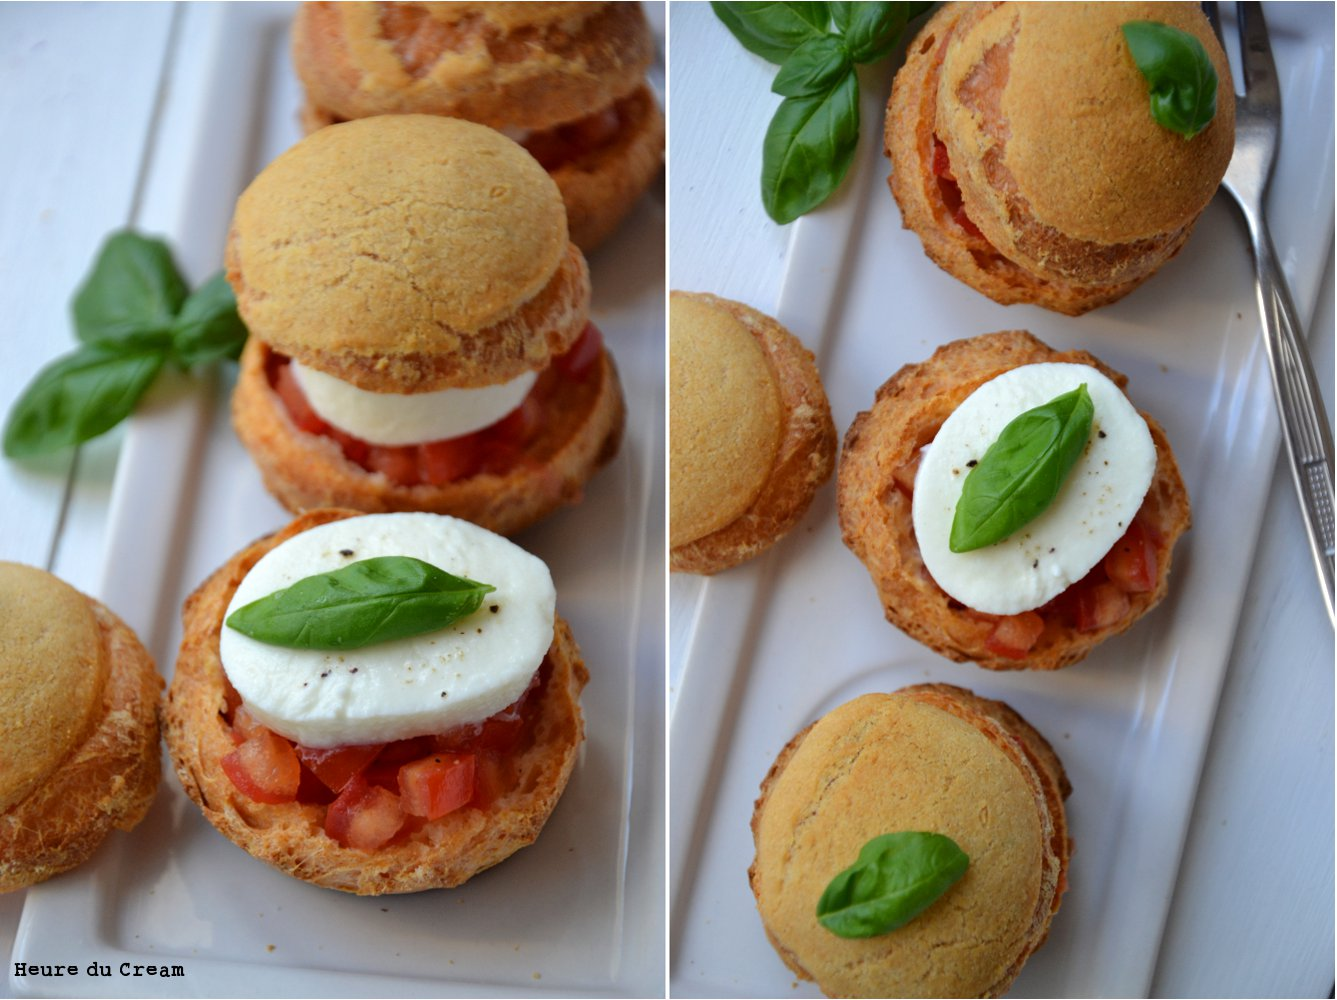 choux fa on caprese tomate mozzarella l 39 heure du creaml 39 heure du cream. Black Bedroom Furniture Sets. Home Design Ideas